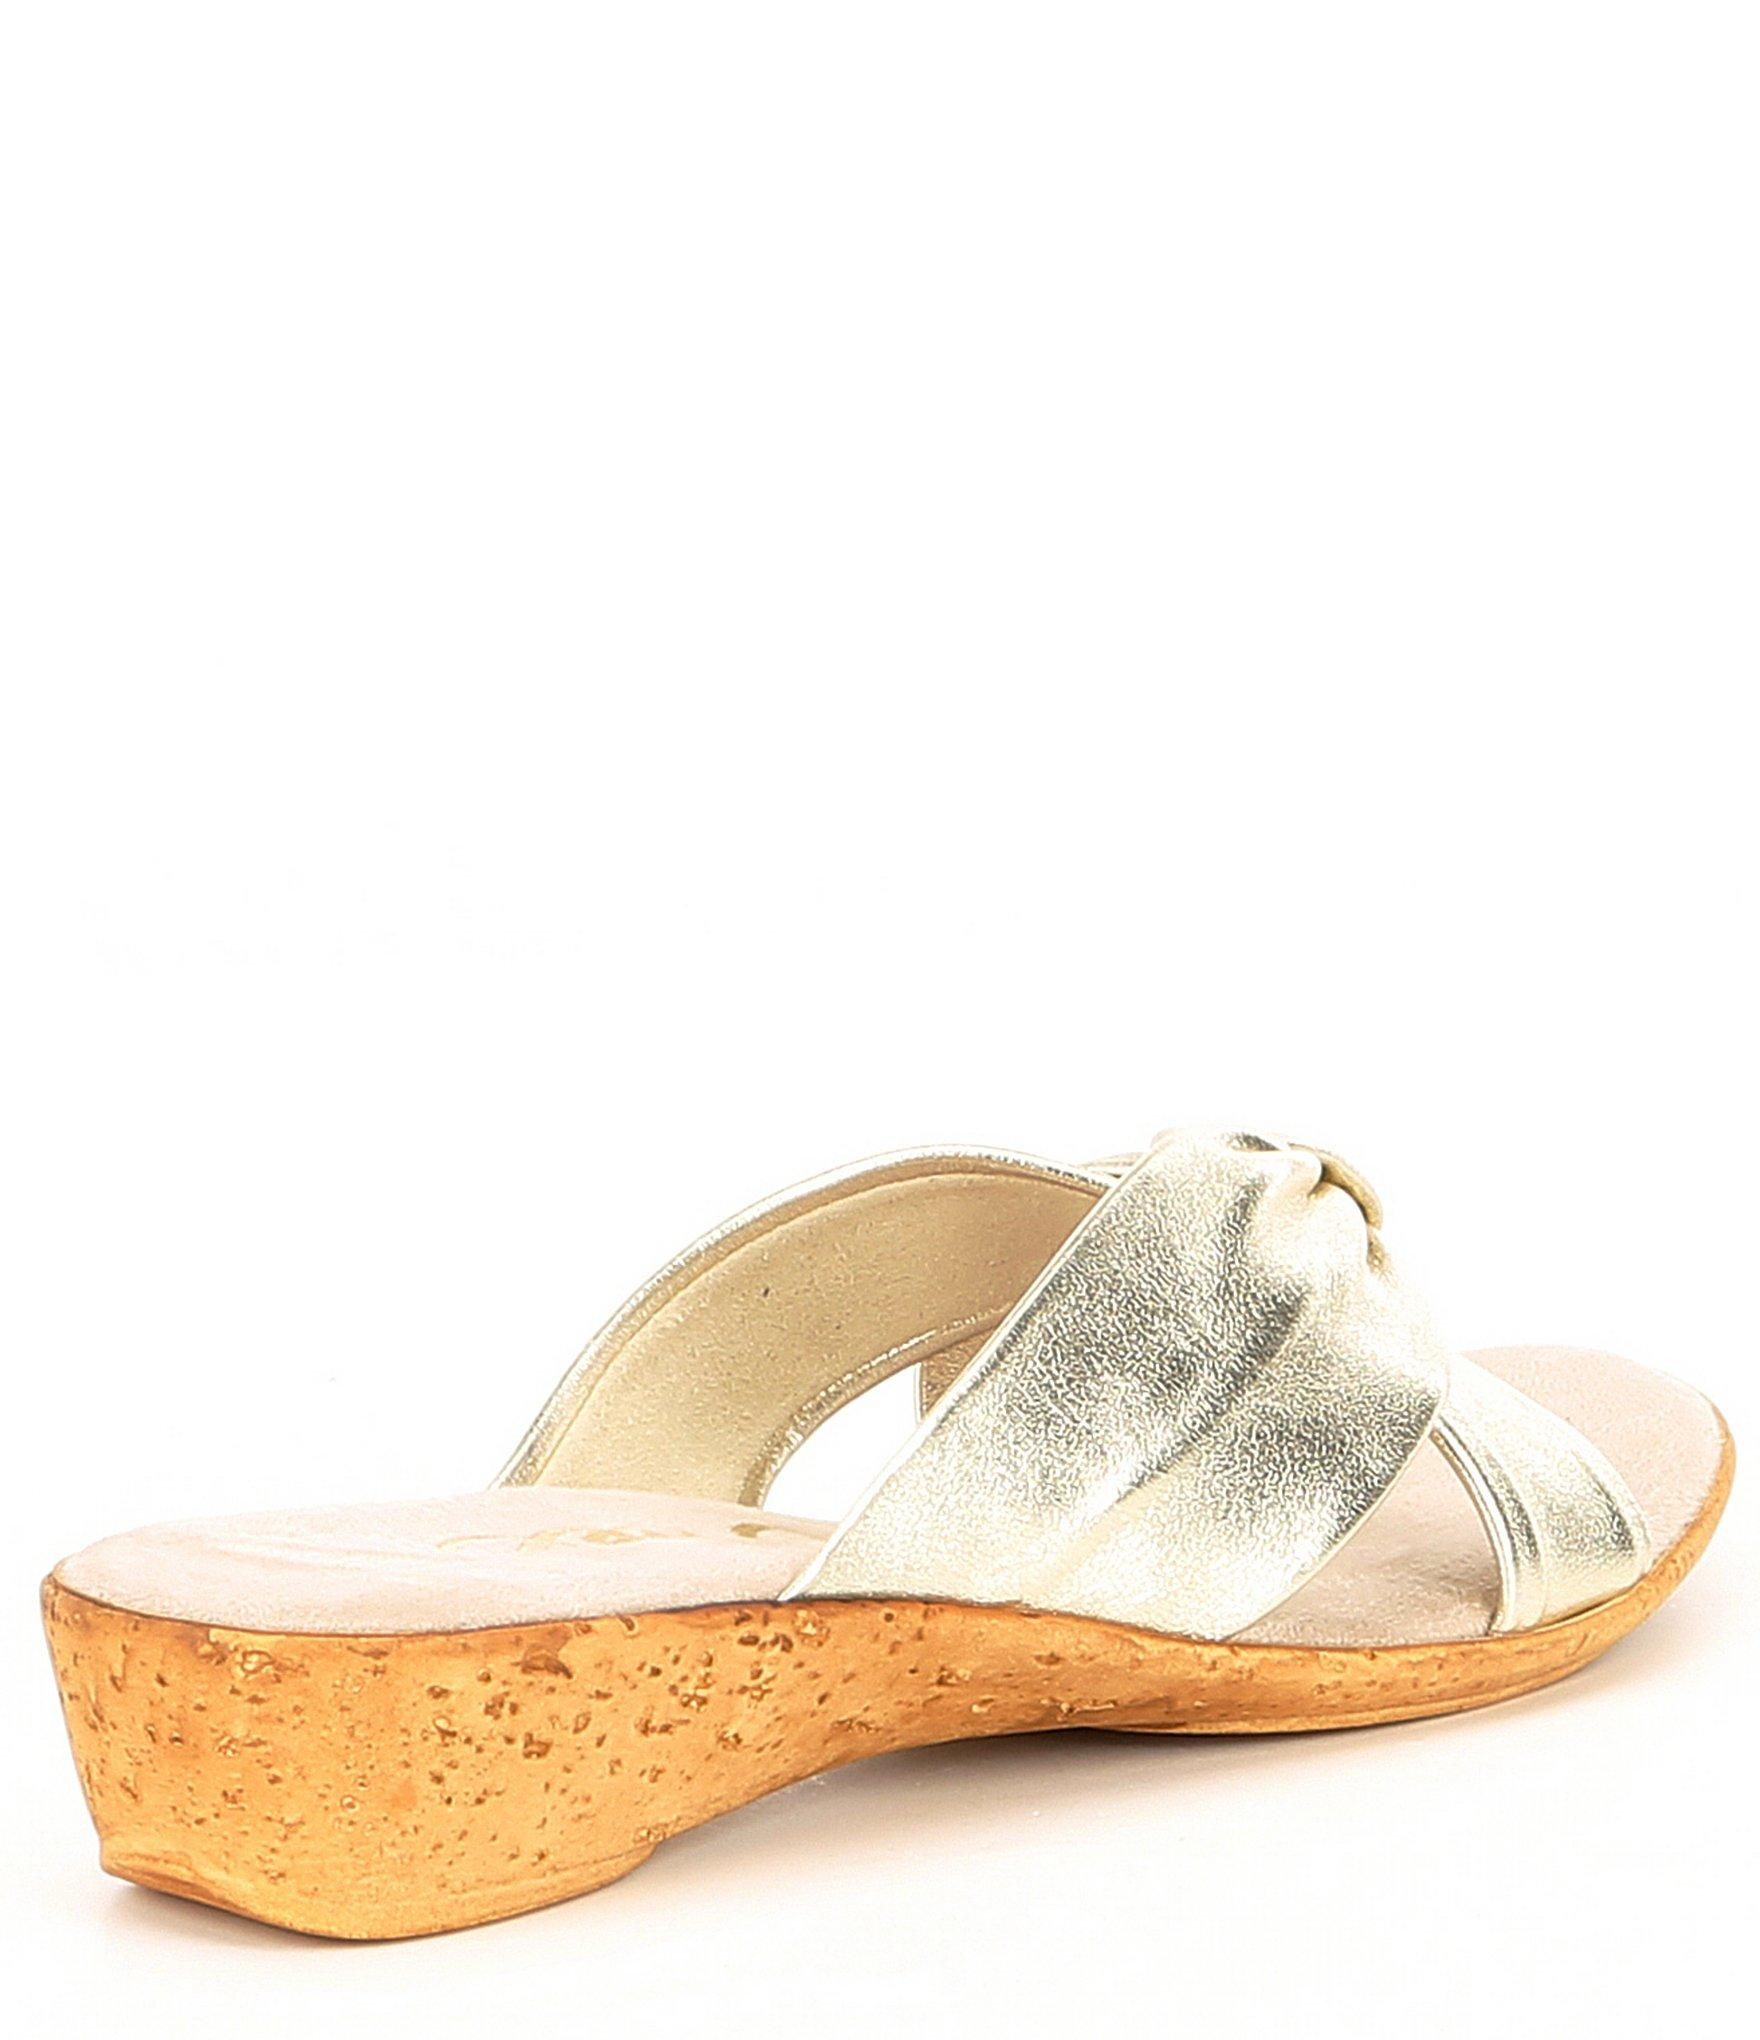 ec97389ae03 Onex - Multicolor Oasis Leather Cross-band Slide Wedge Sandals - Lyst. View  fullscreen